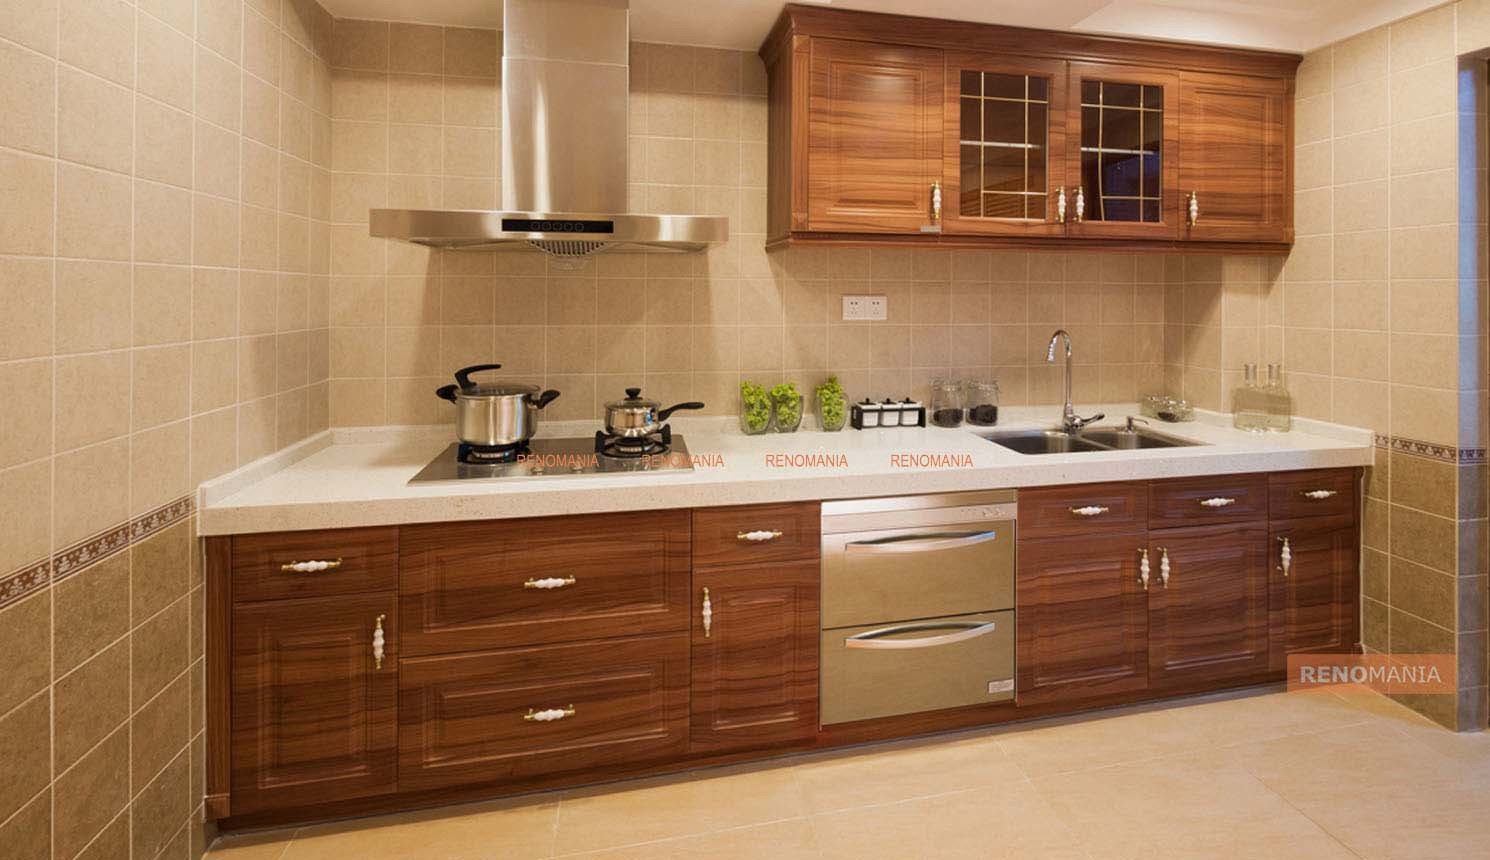 Straight Line Kitchen For Instant Character By Renomania Medium